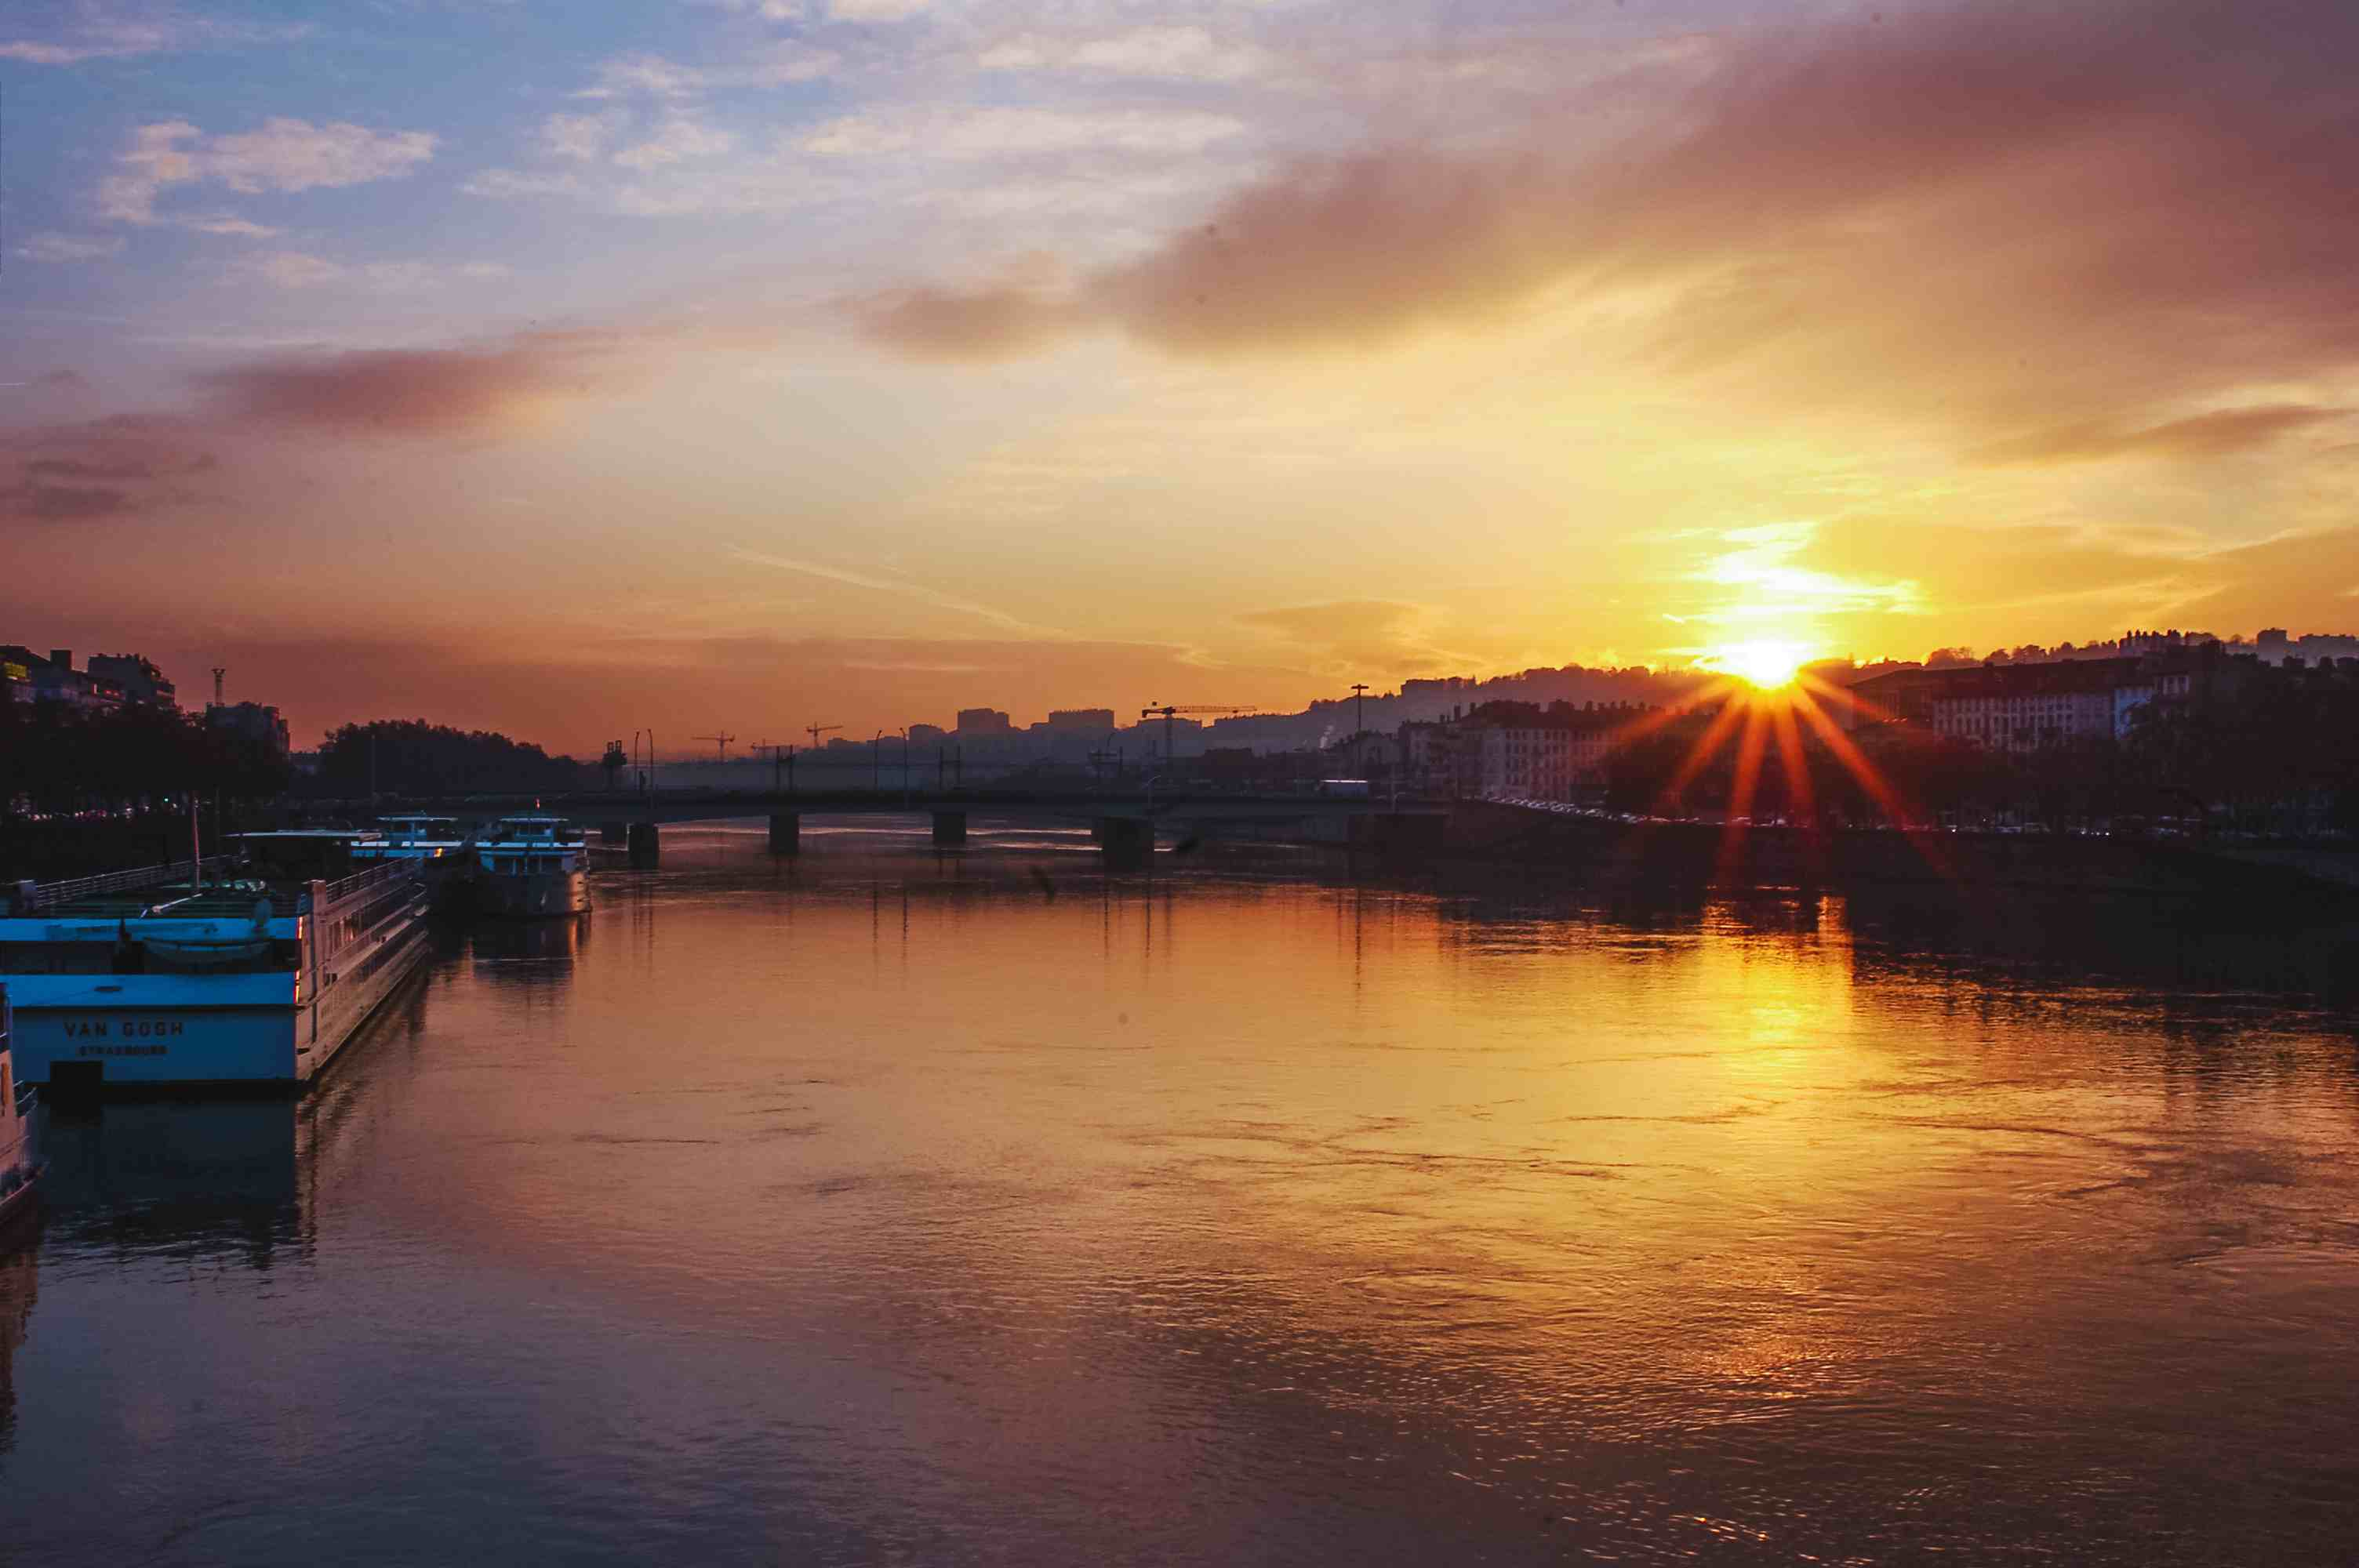 Sunset on the river in Lyon